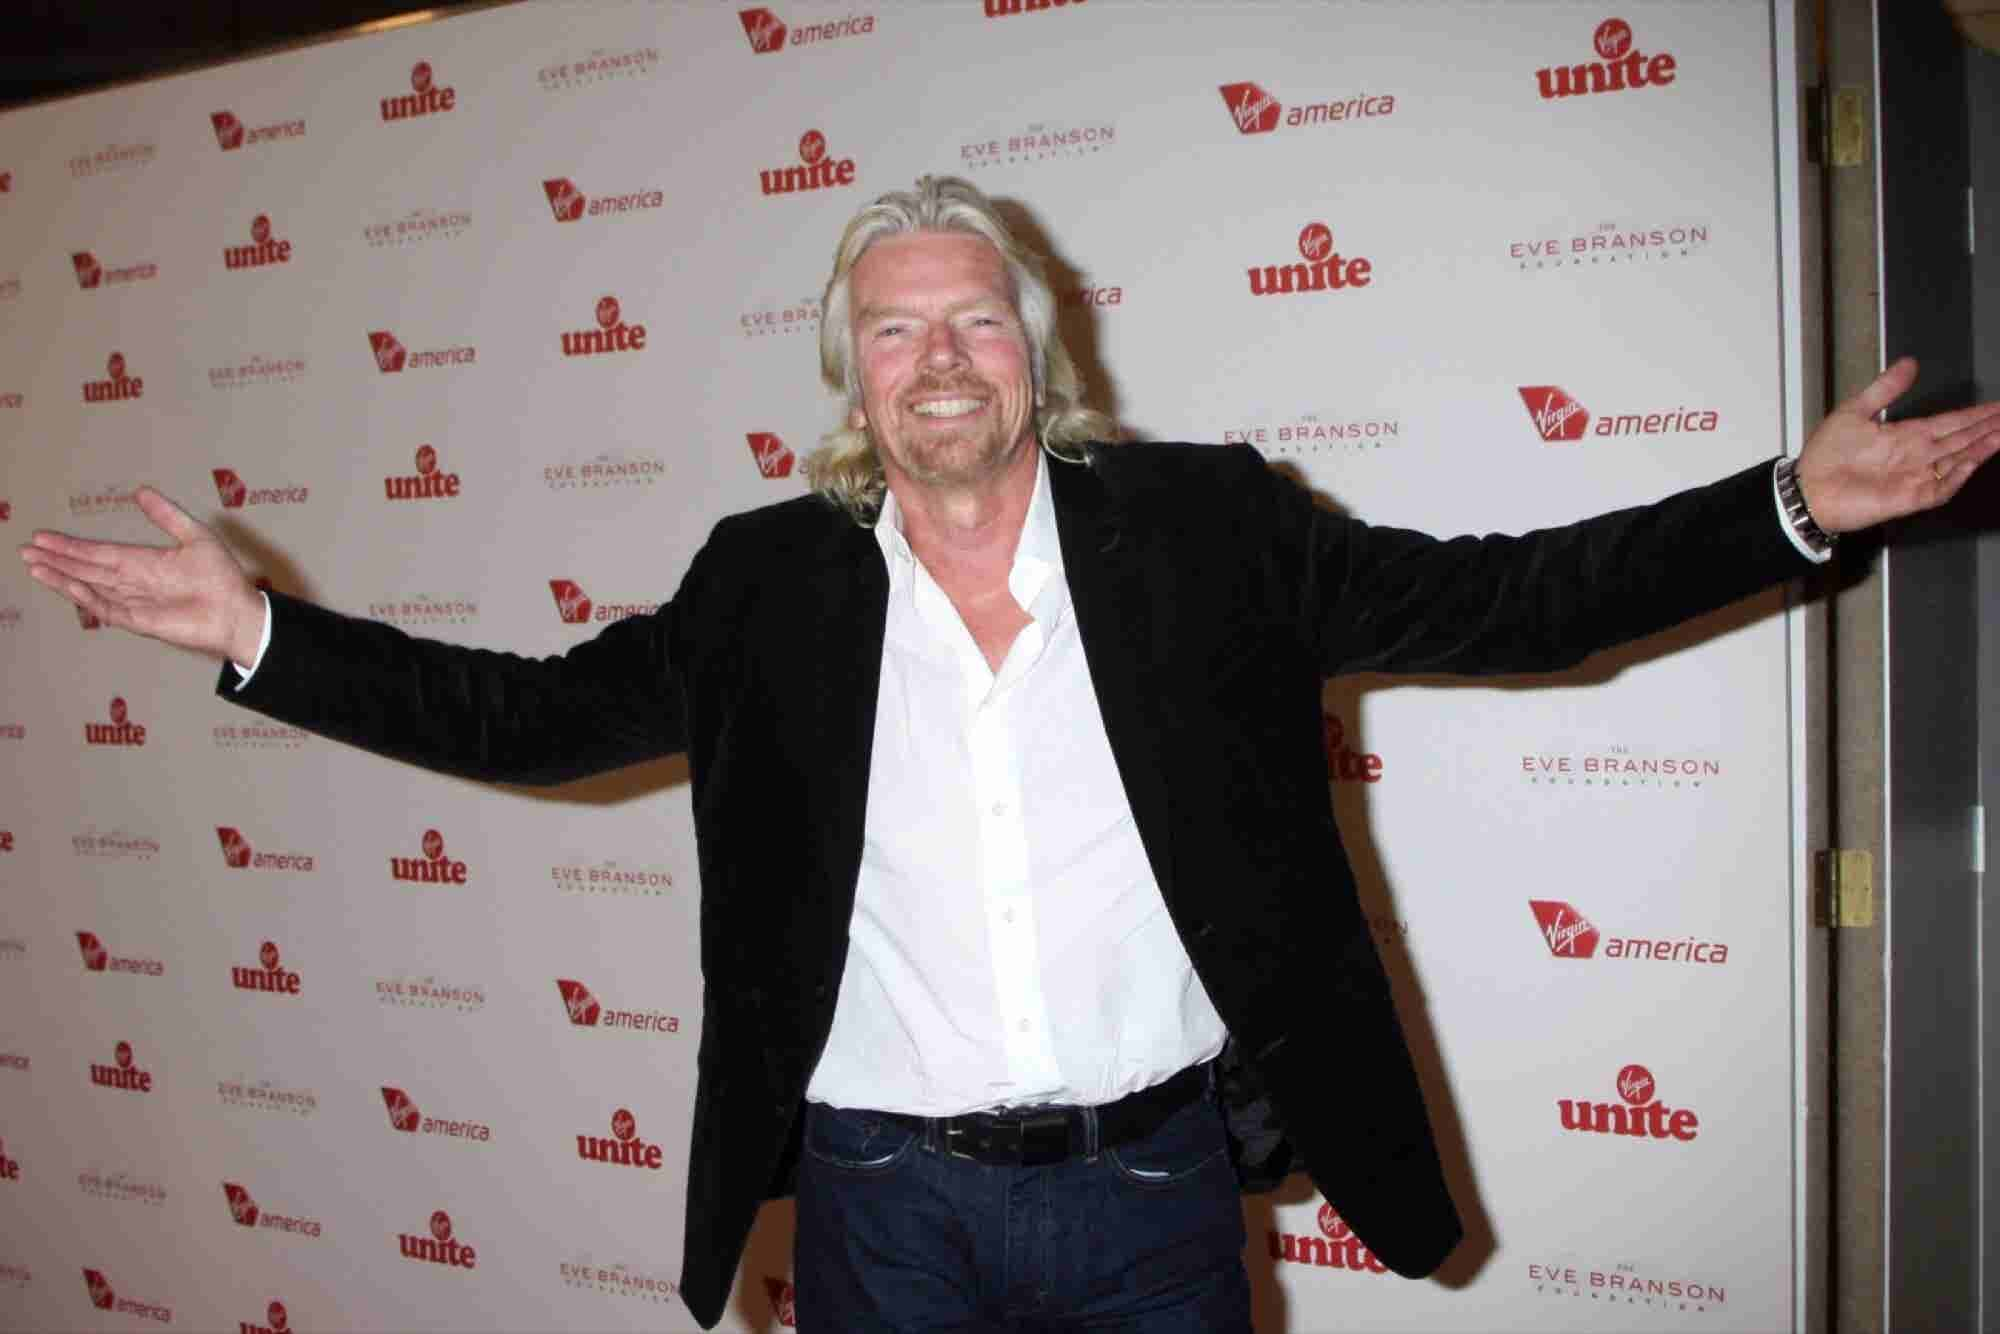 Richard Branson: Just Say Yes to Smoking Pot With Your Kids